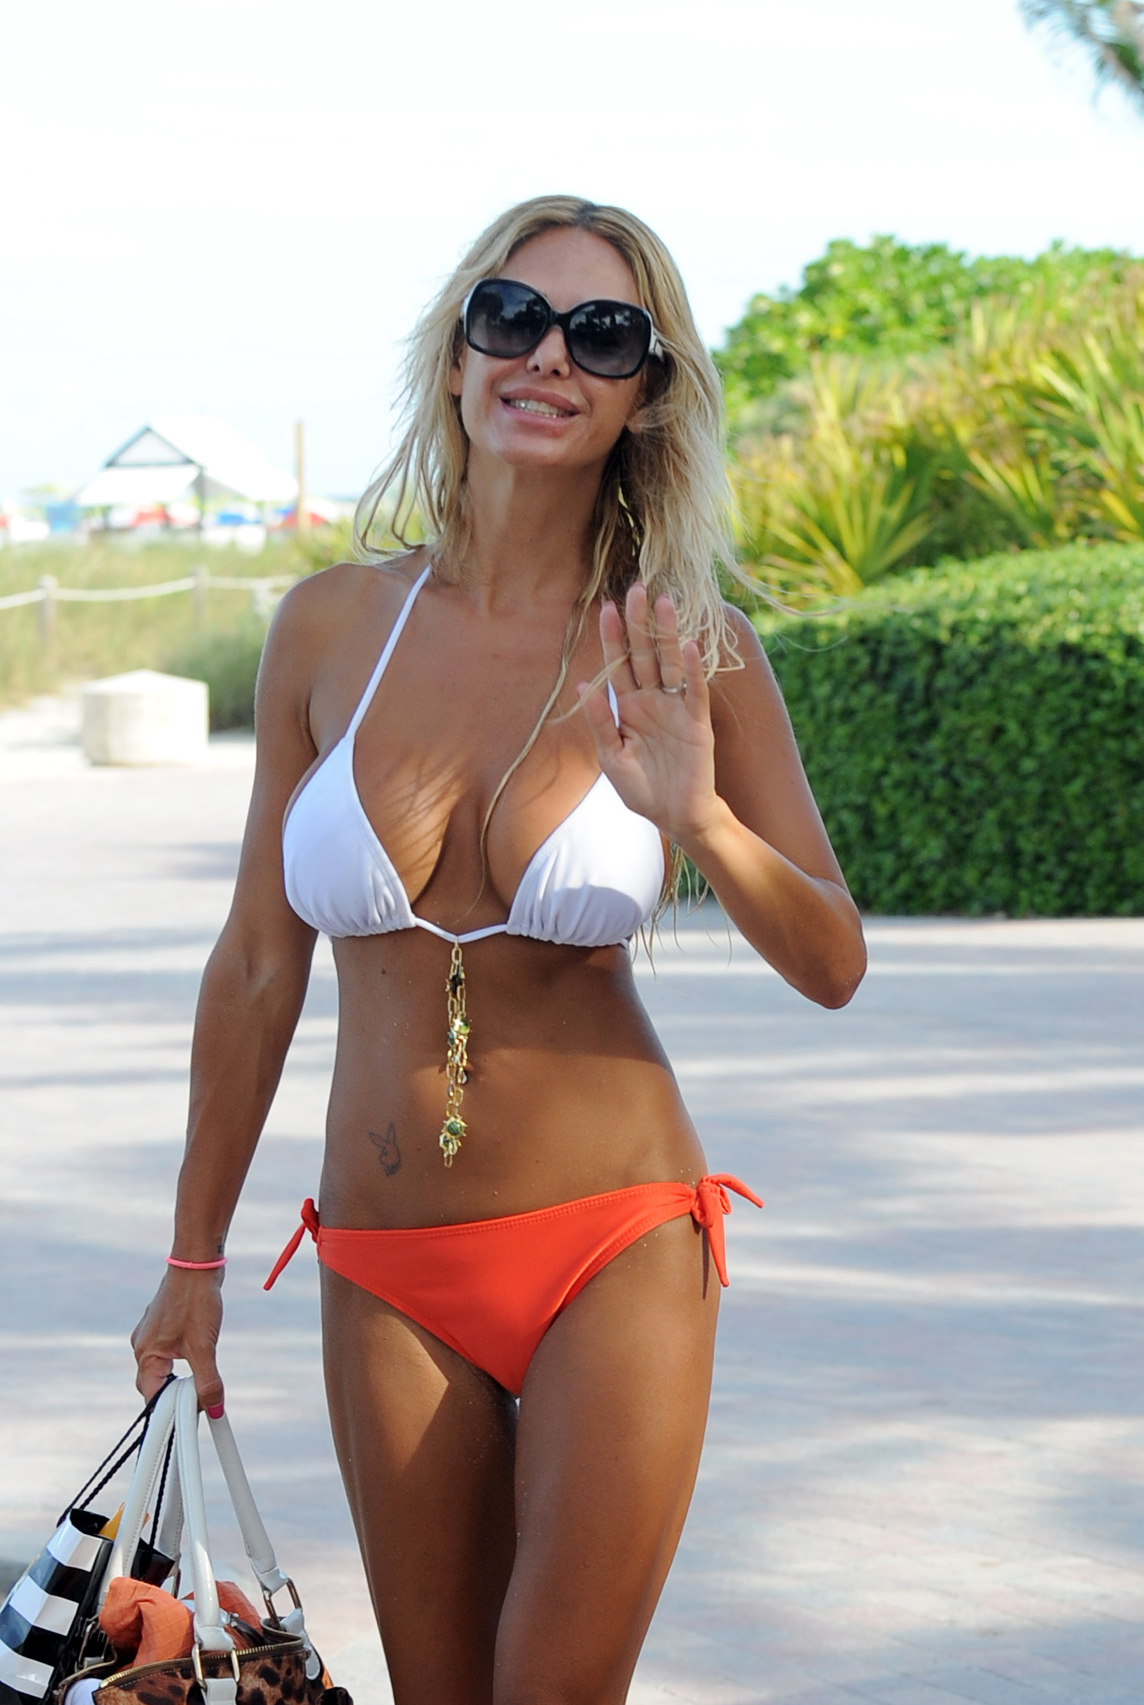 Bikini Shauna Sand naked (41 photos), Topless, Leaked, Boobs, butt 2018